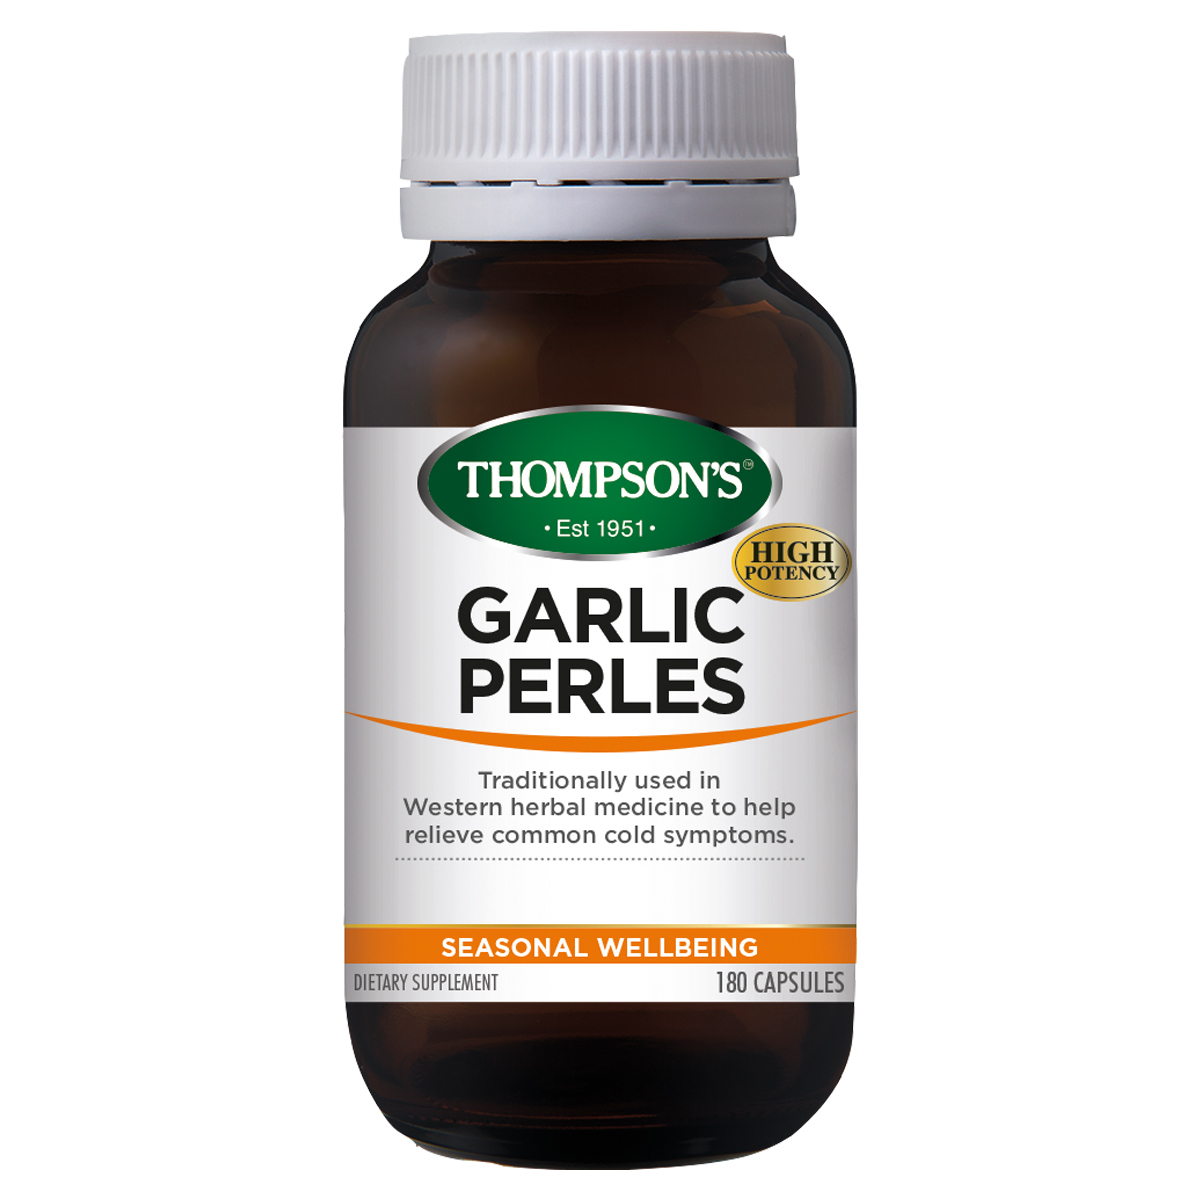 Thompsons Garlic Perles 180 Capsules